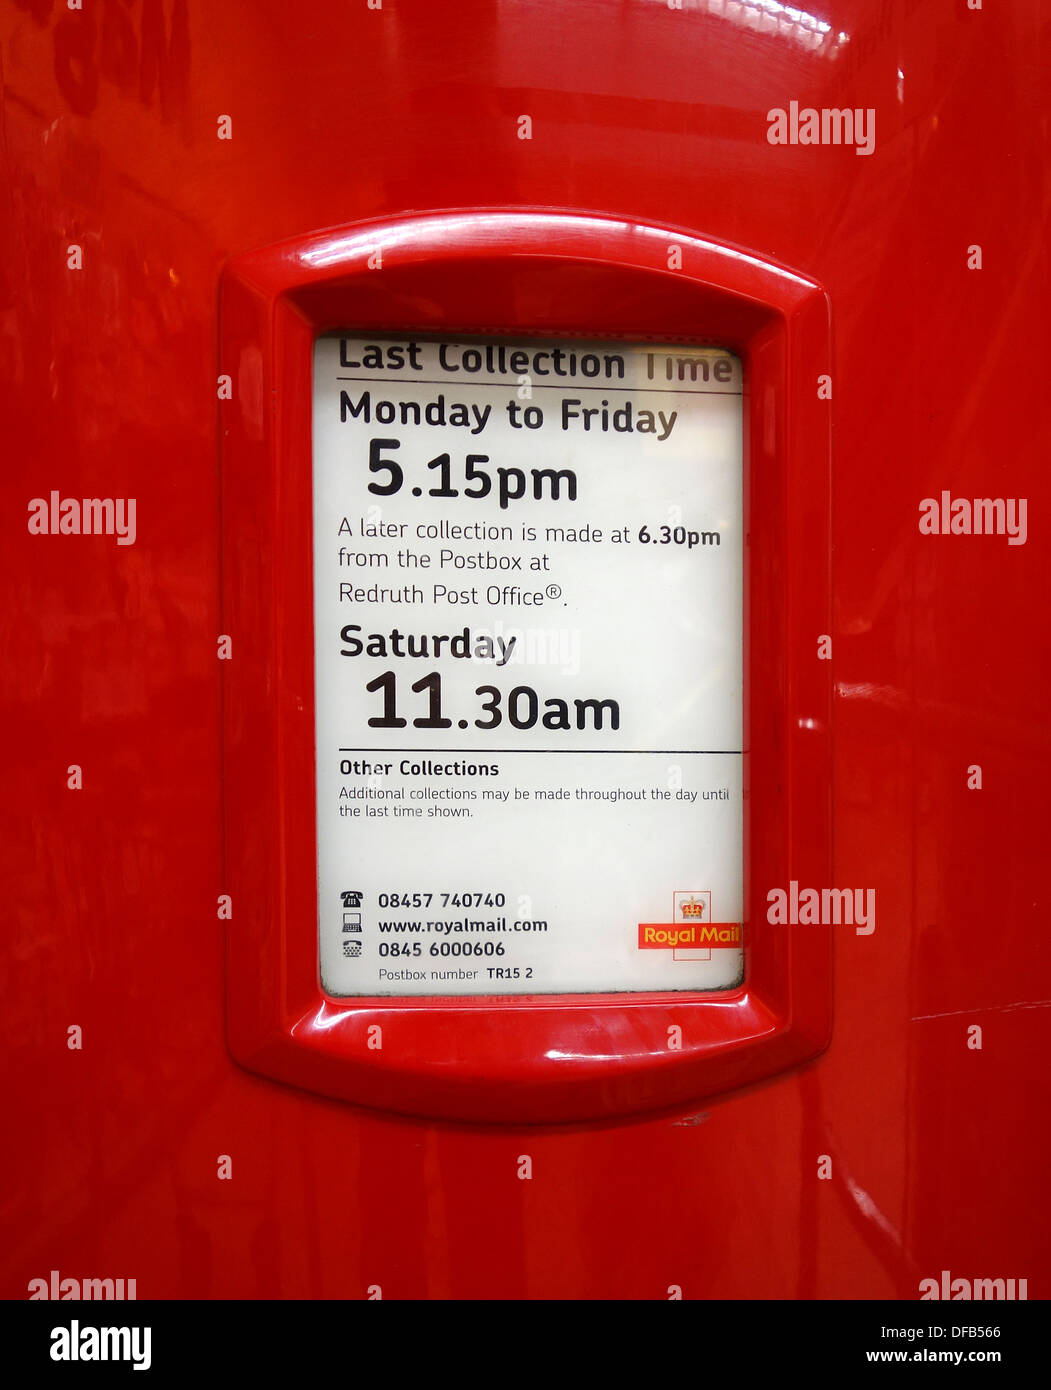 Post Office Collection Times >> A Last Collection Times Notice On A Uk Post Box Stock Photo